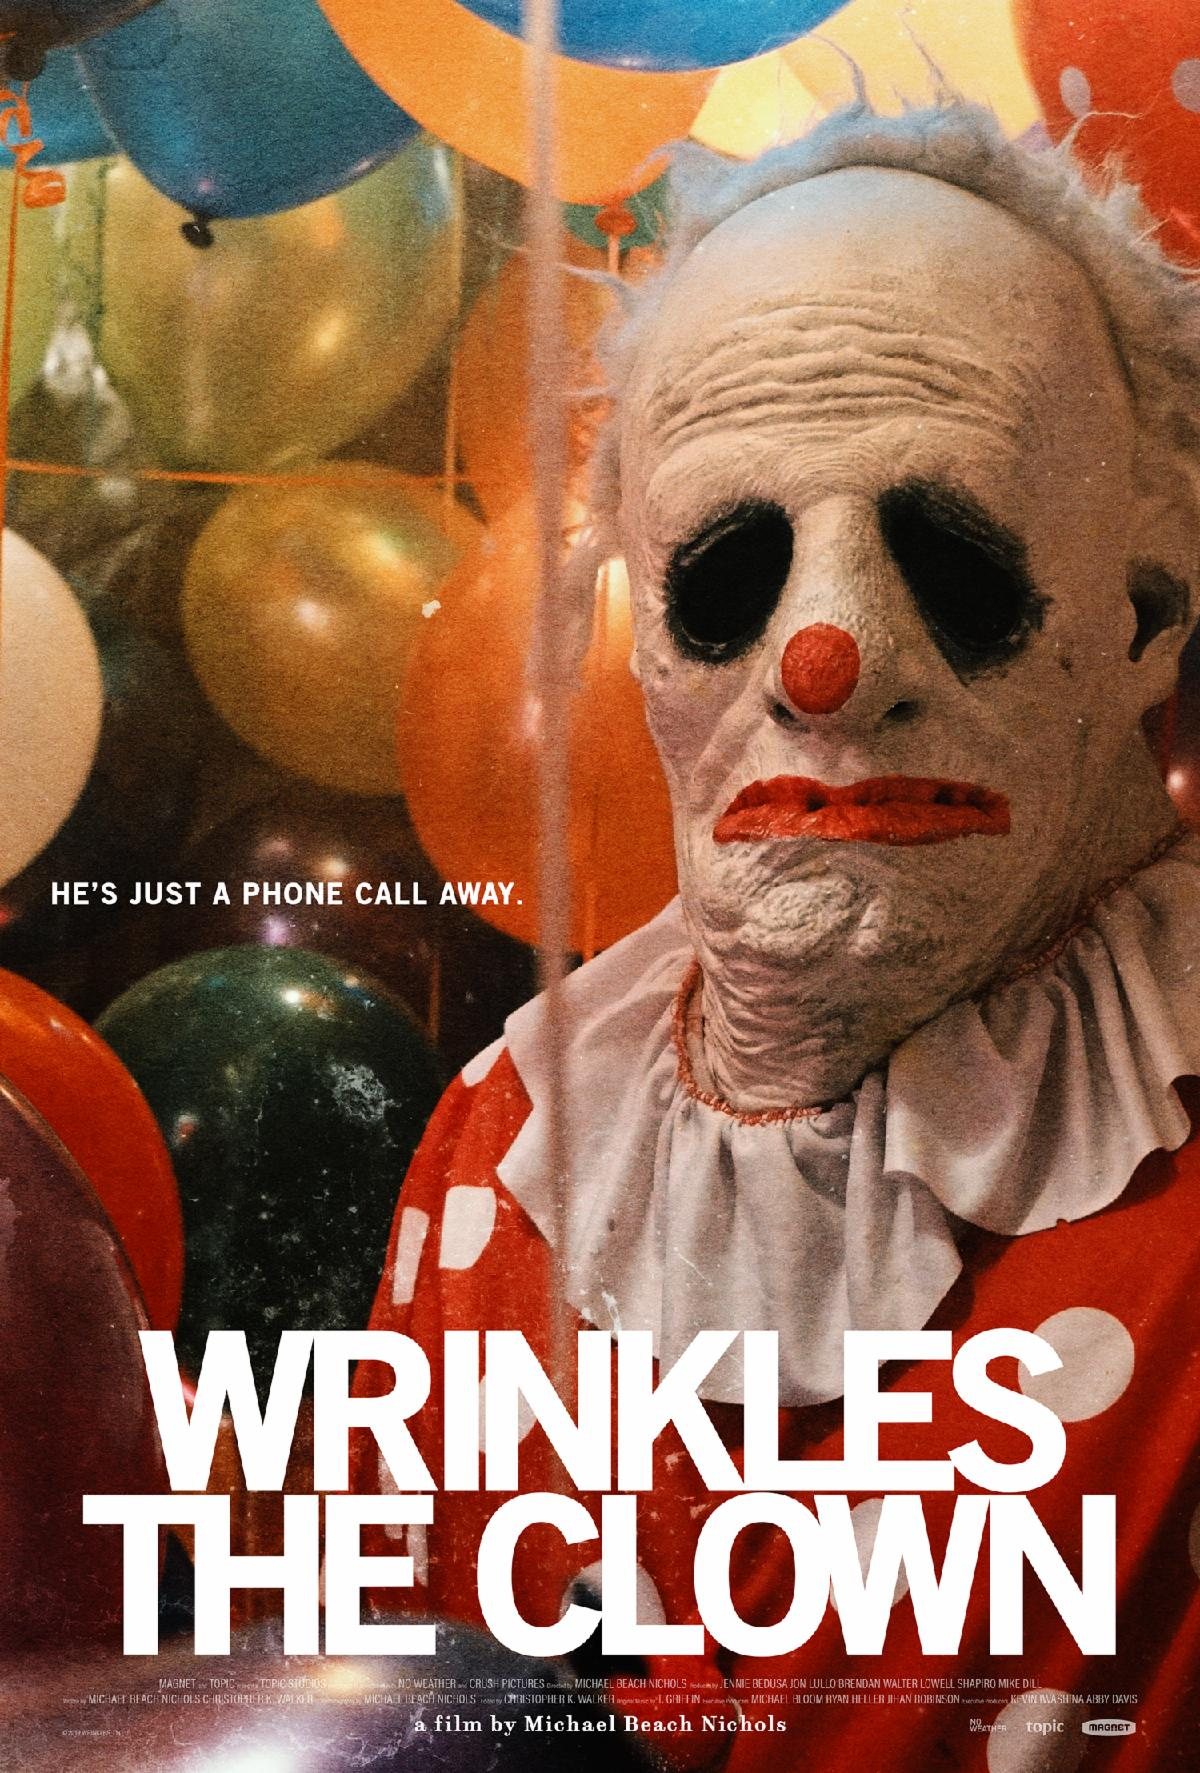 WRINKLES THE CLOWN in US Theaters and On Demand 4 October Courtesy of Magnet Releasing